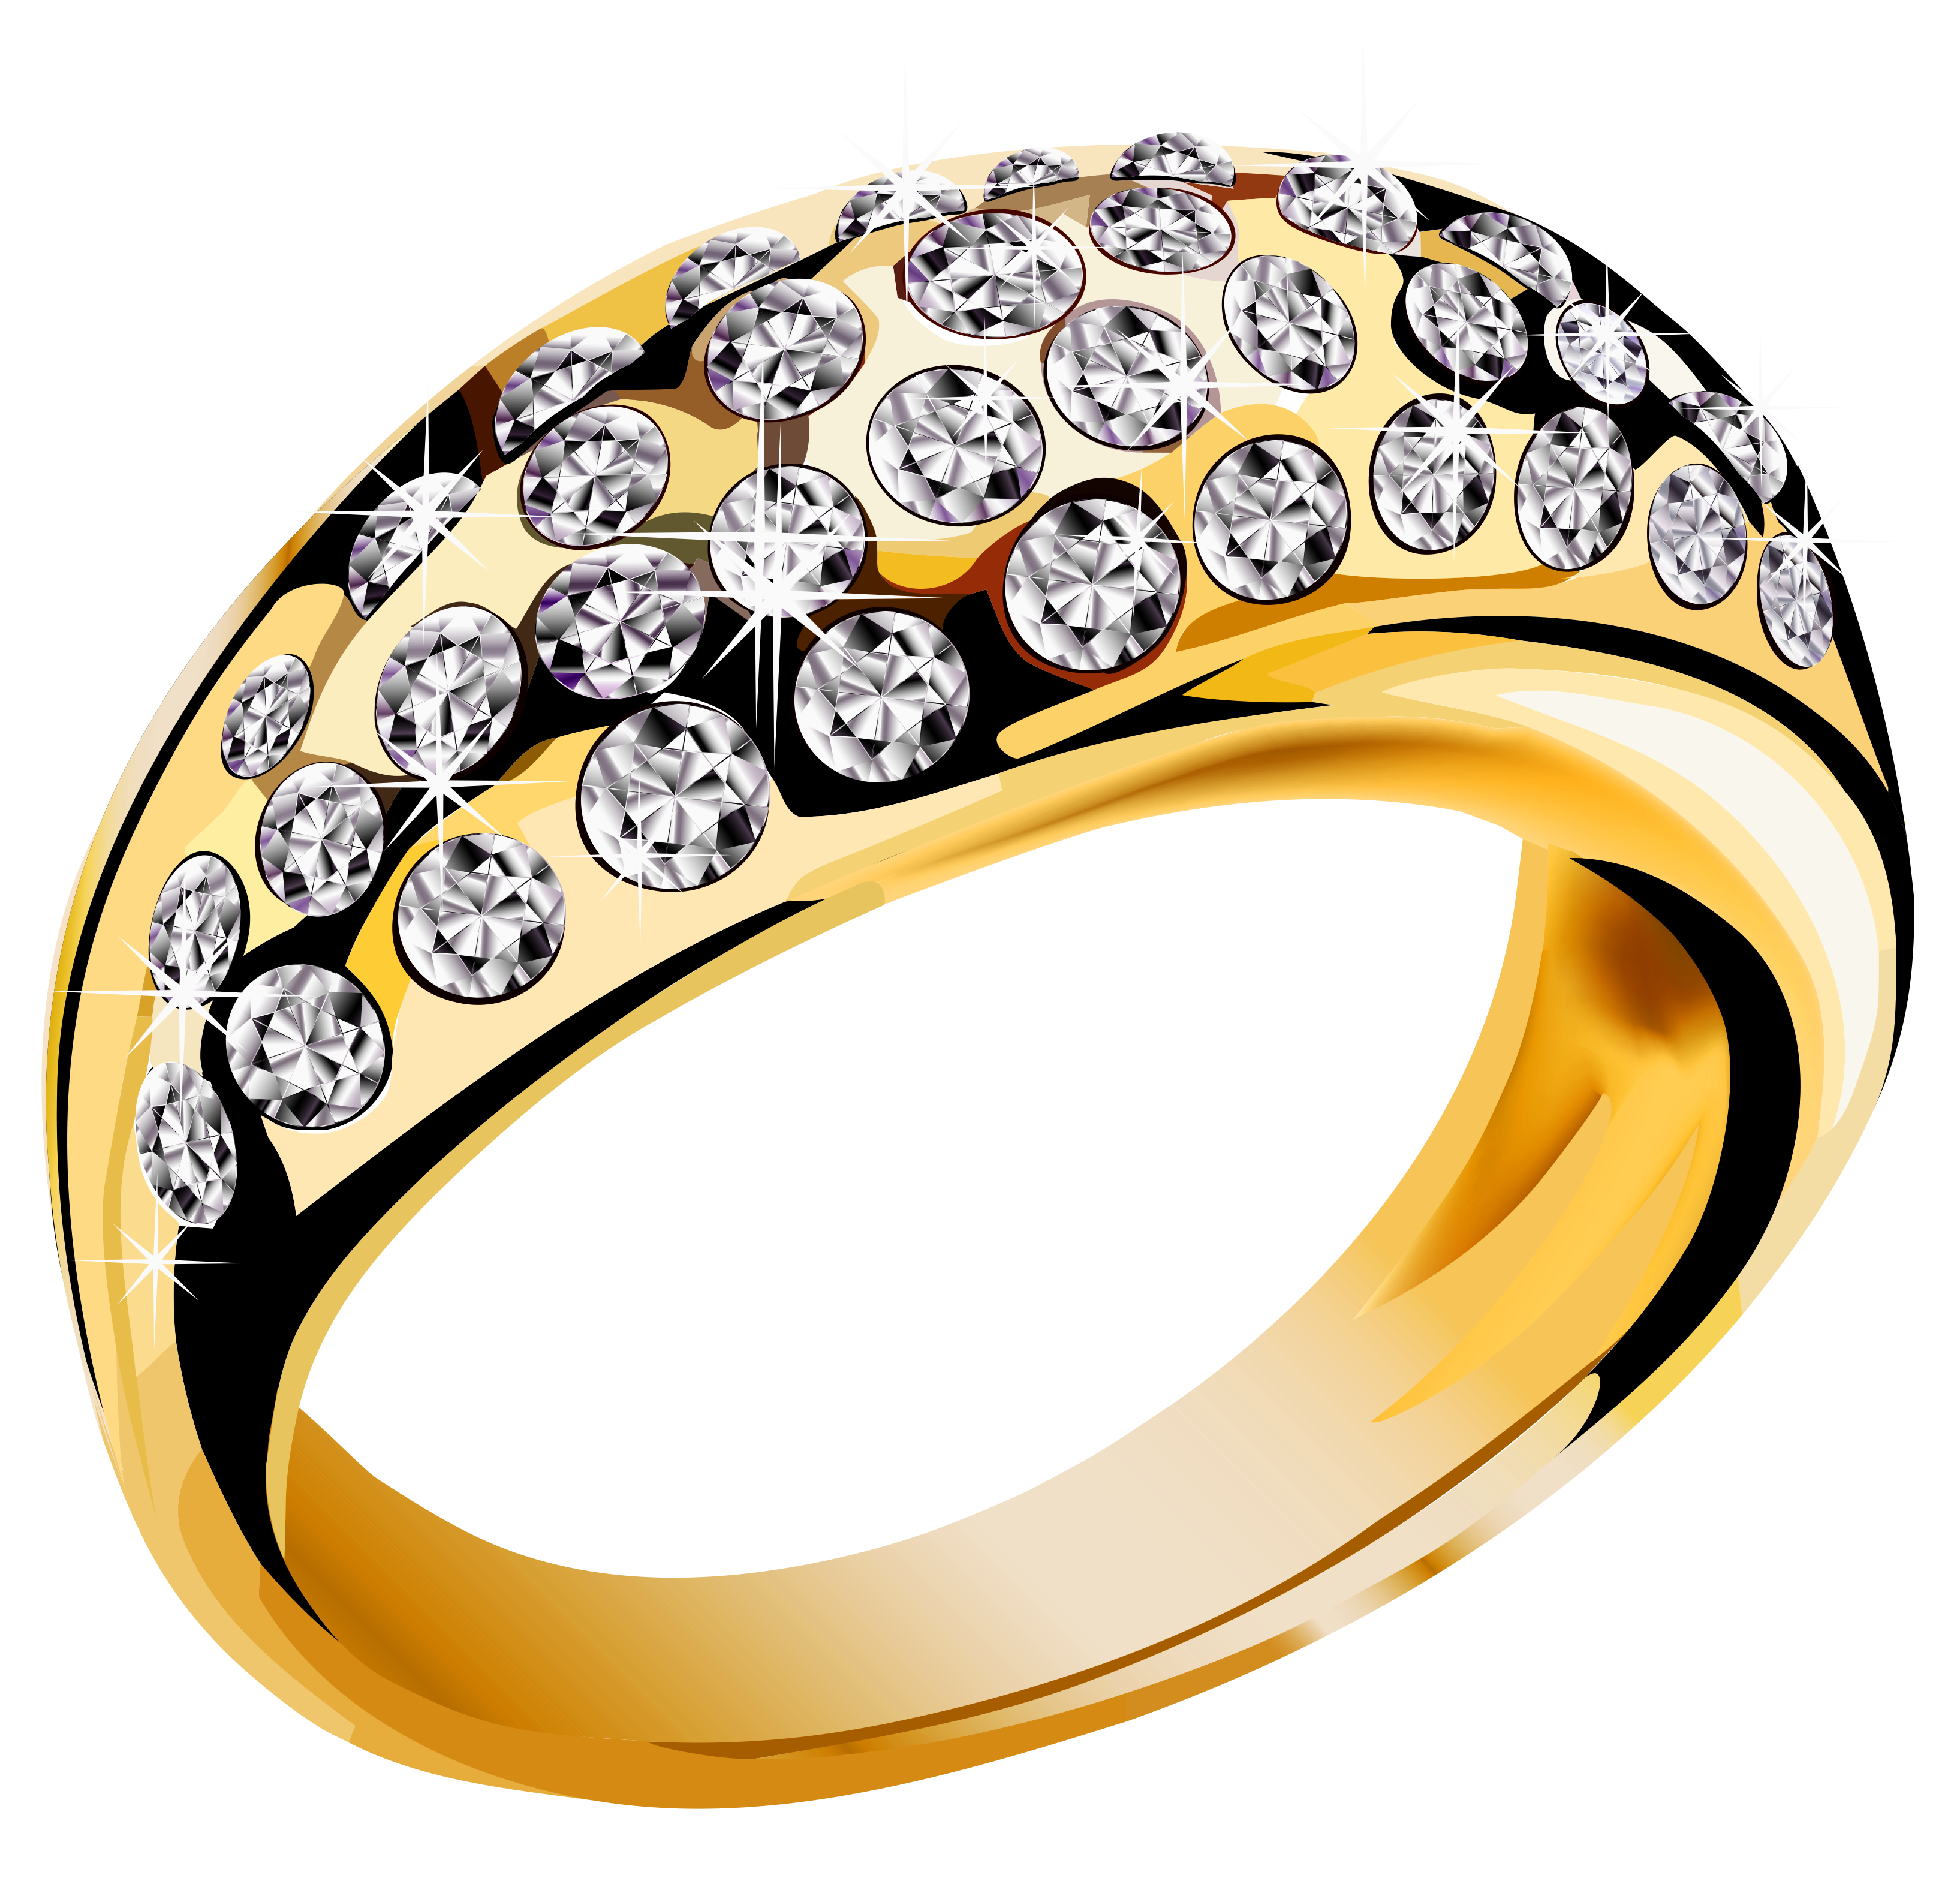 gold ring PNG - Engagement Ring PNG HD Free